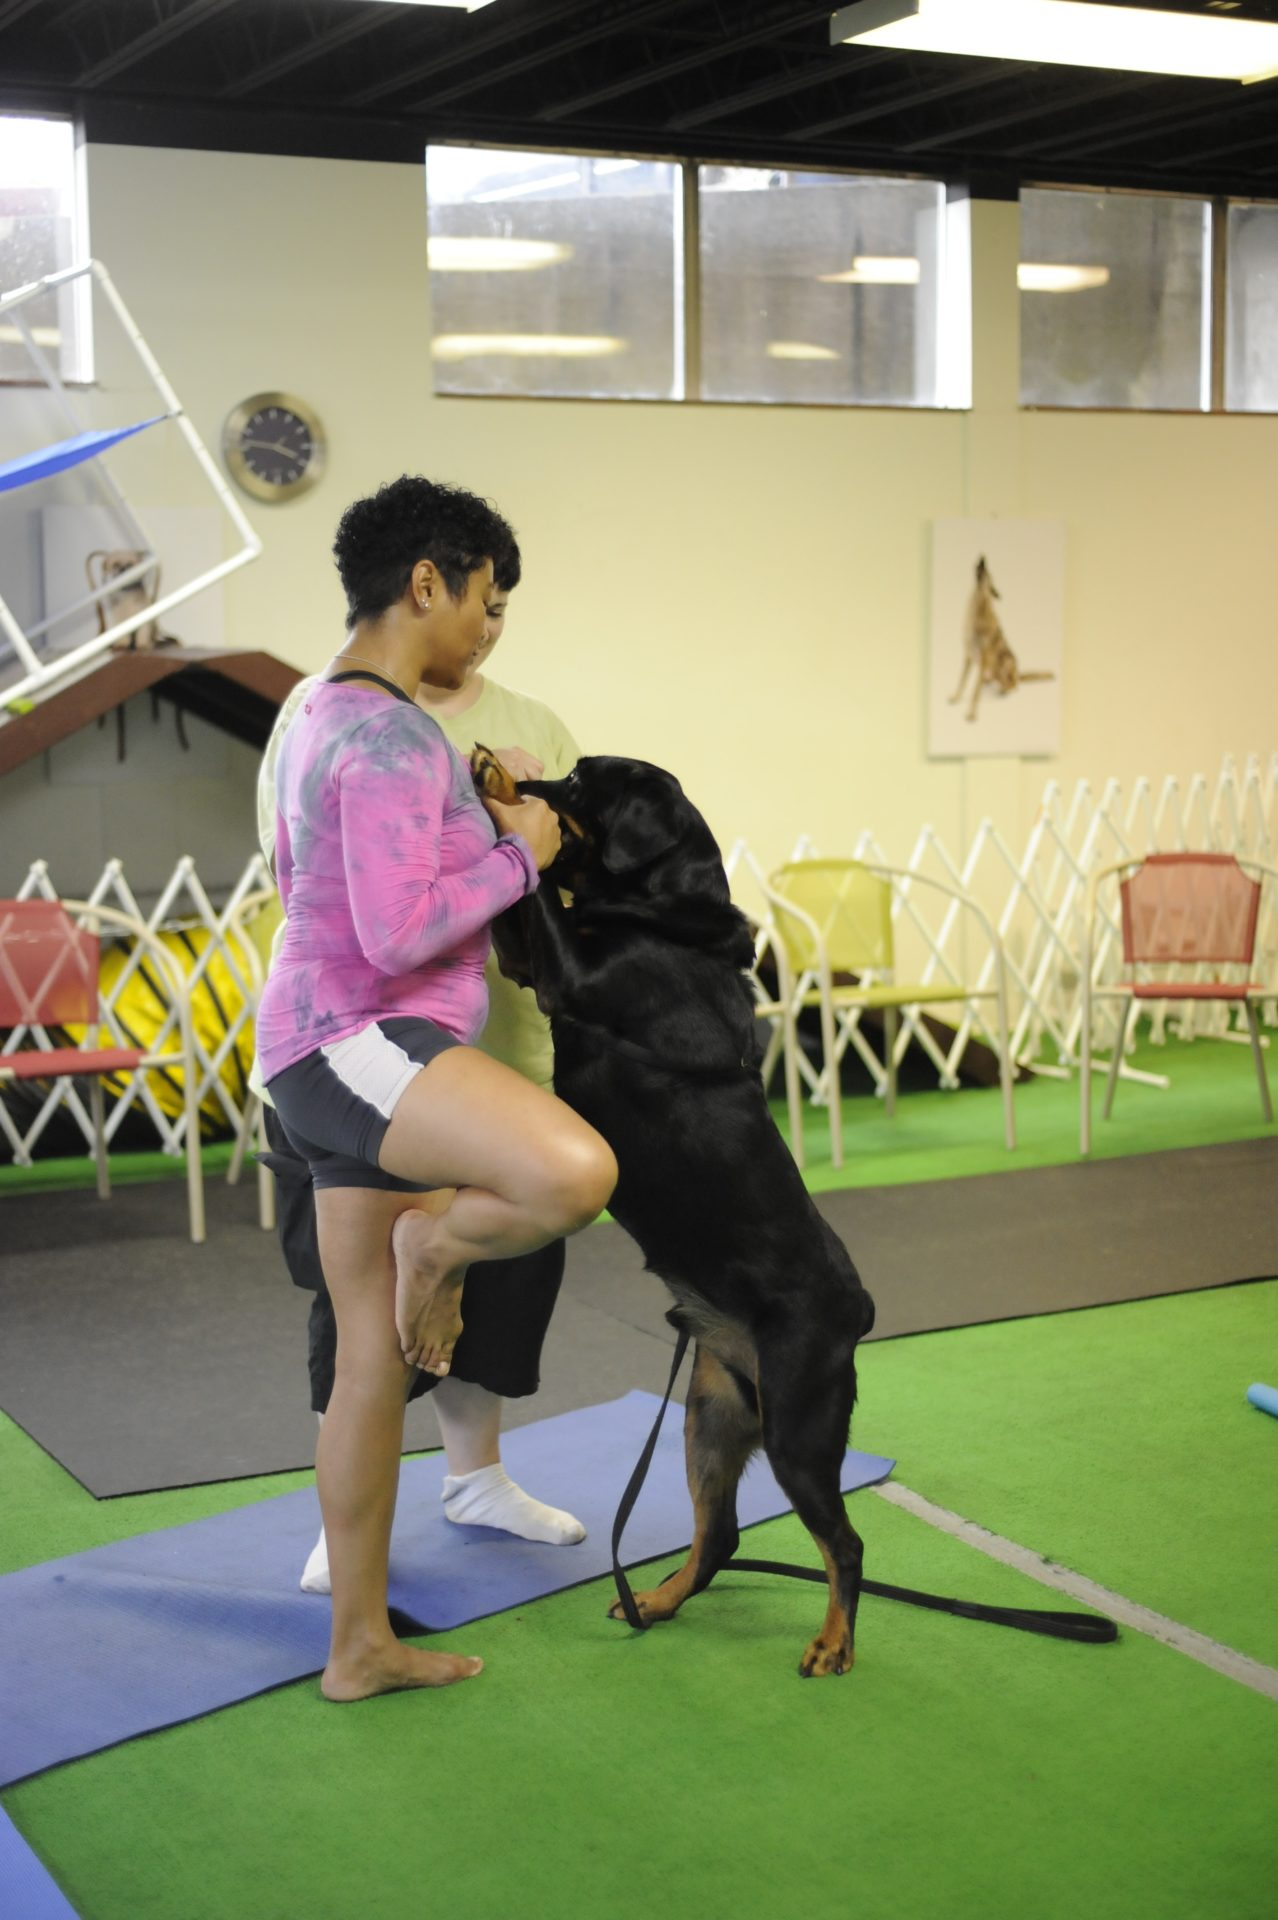 Yoga with your dog, a relaxing play session with your best friend